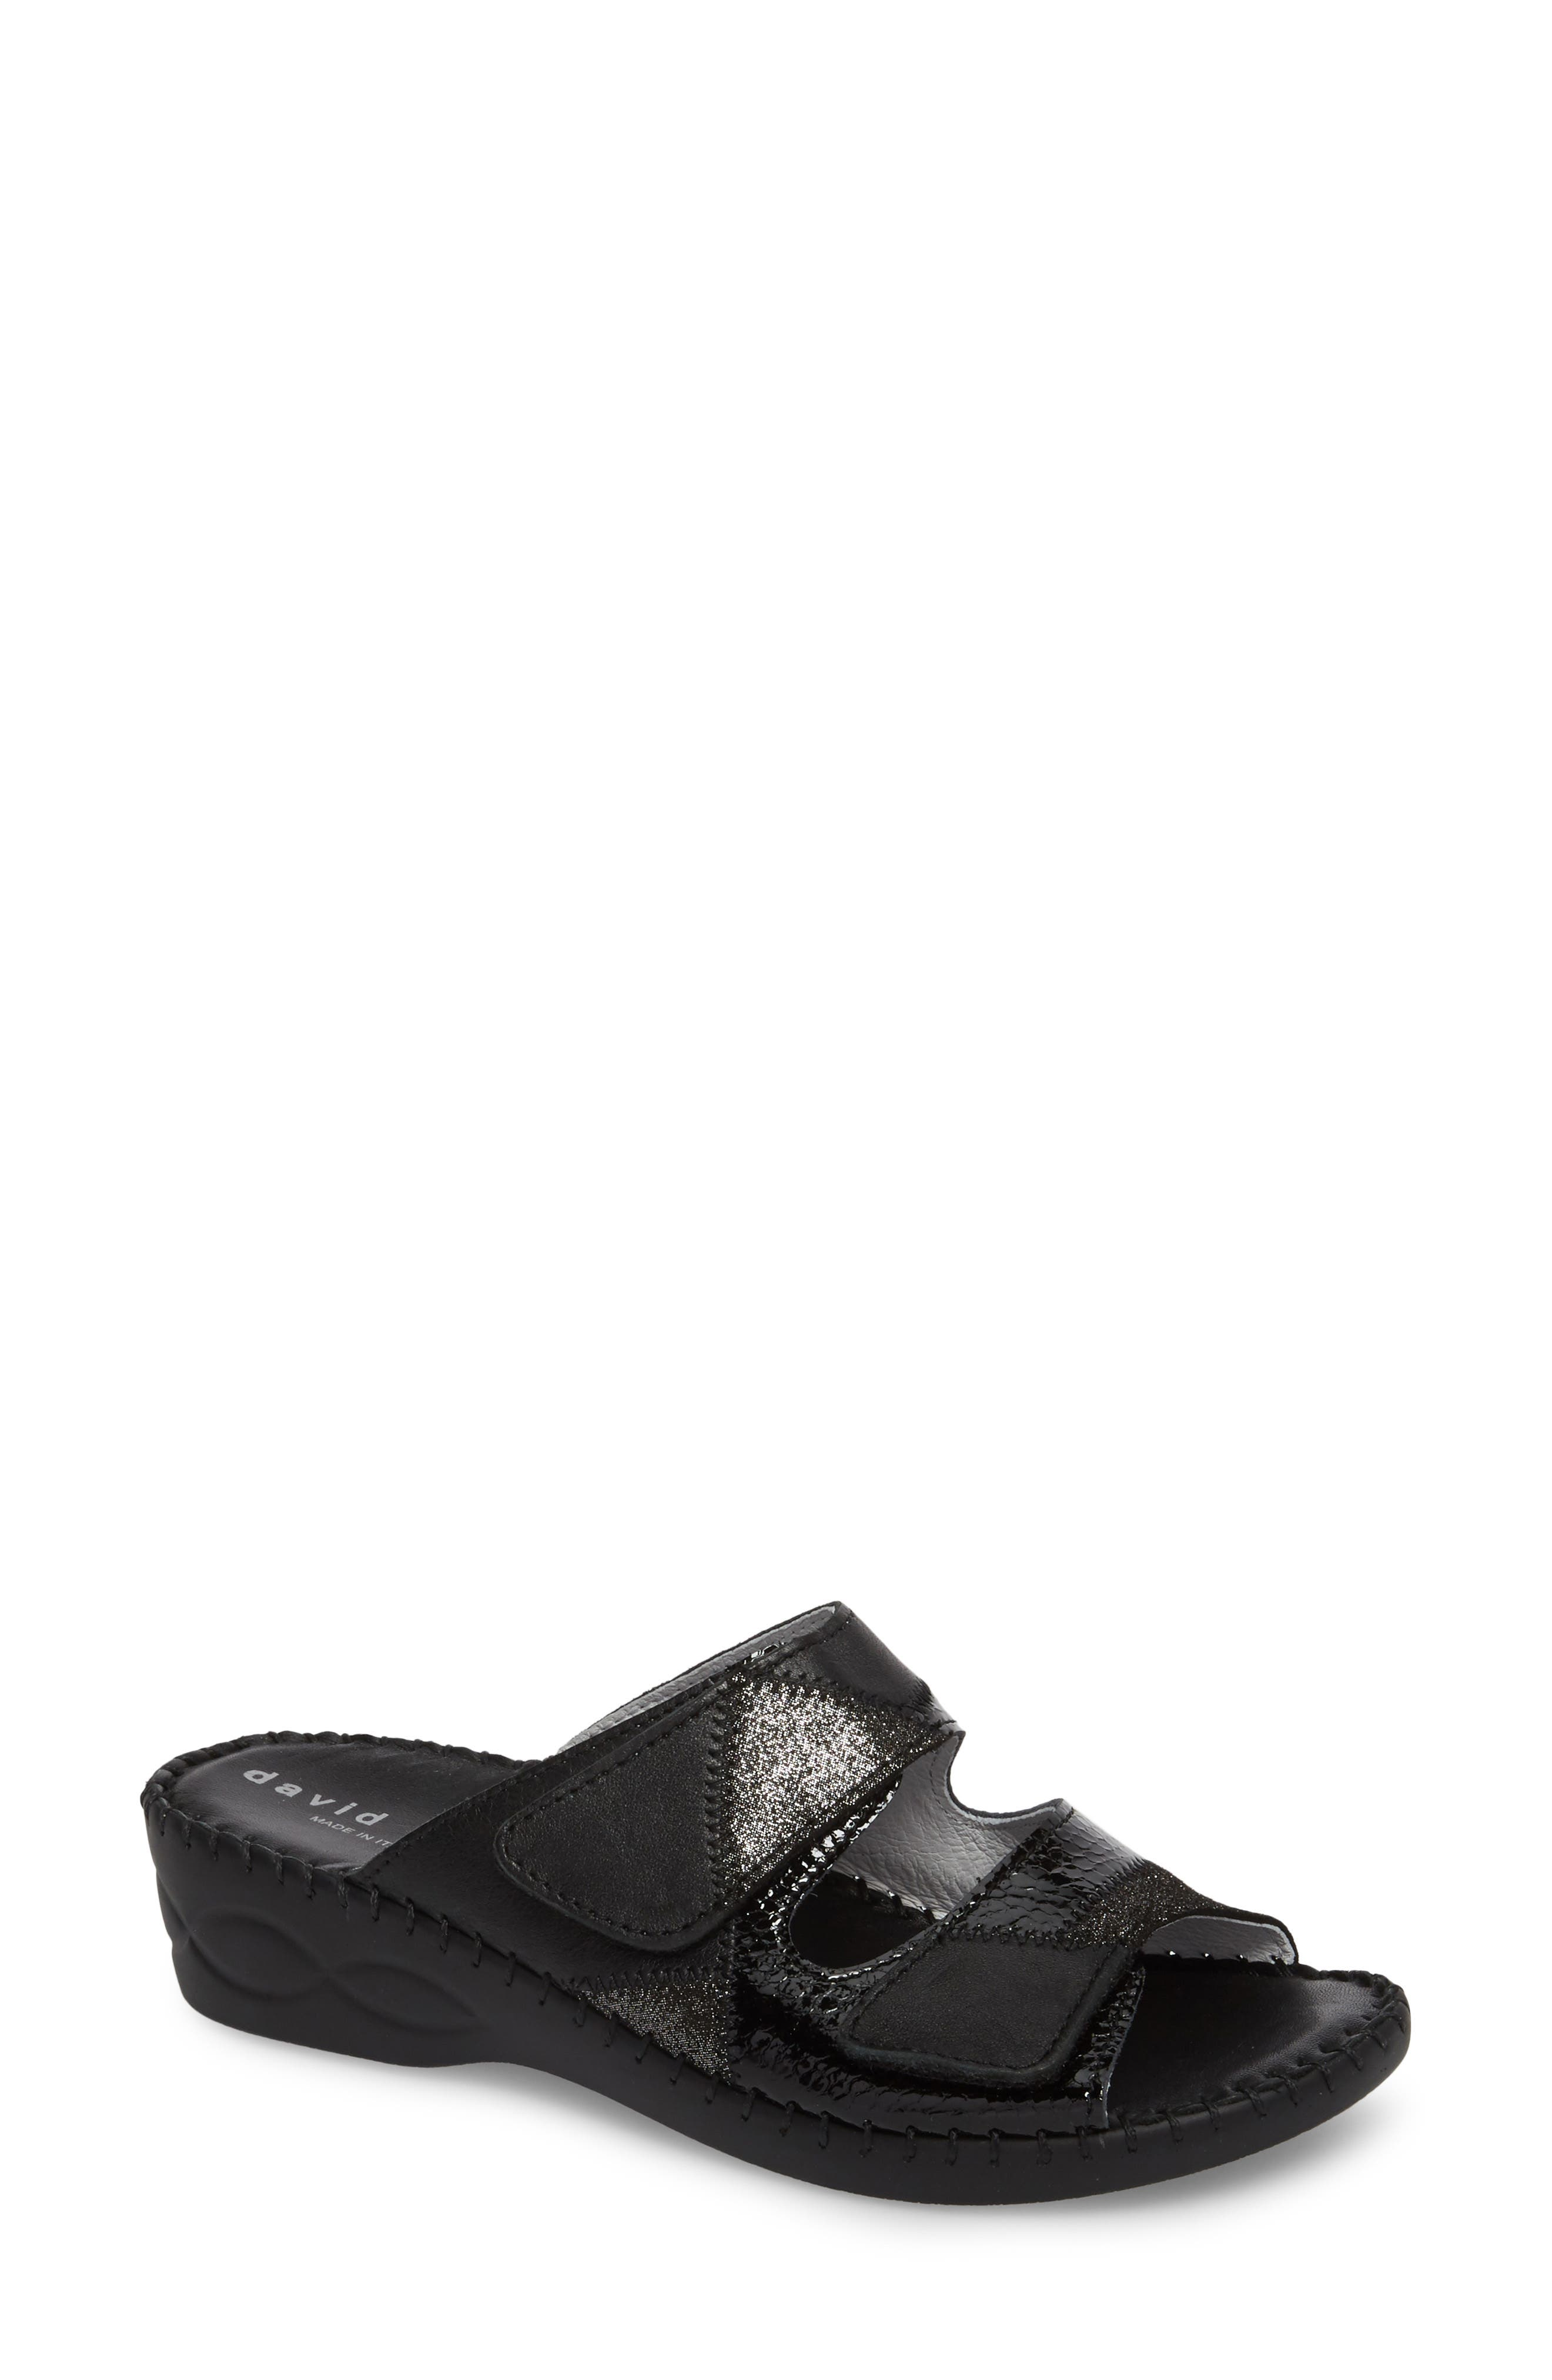 David Tate Flex Slide Sandal (Women)